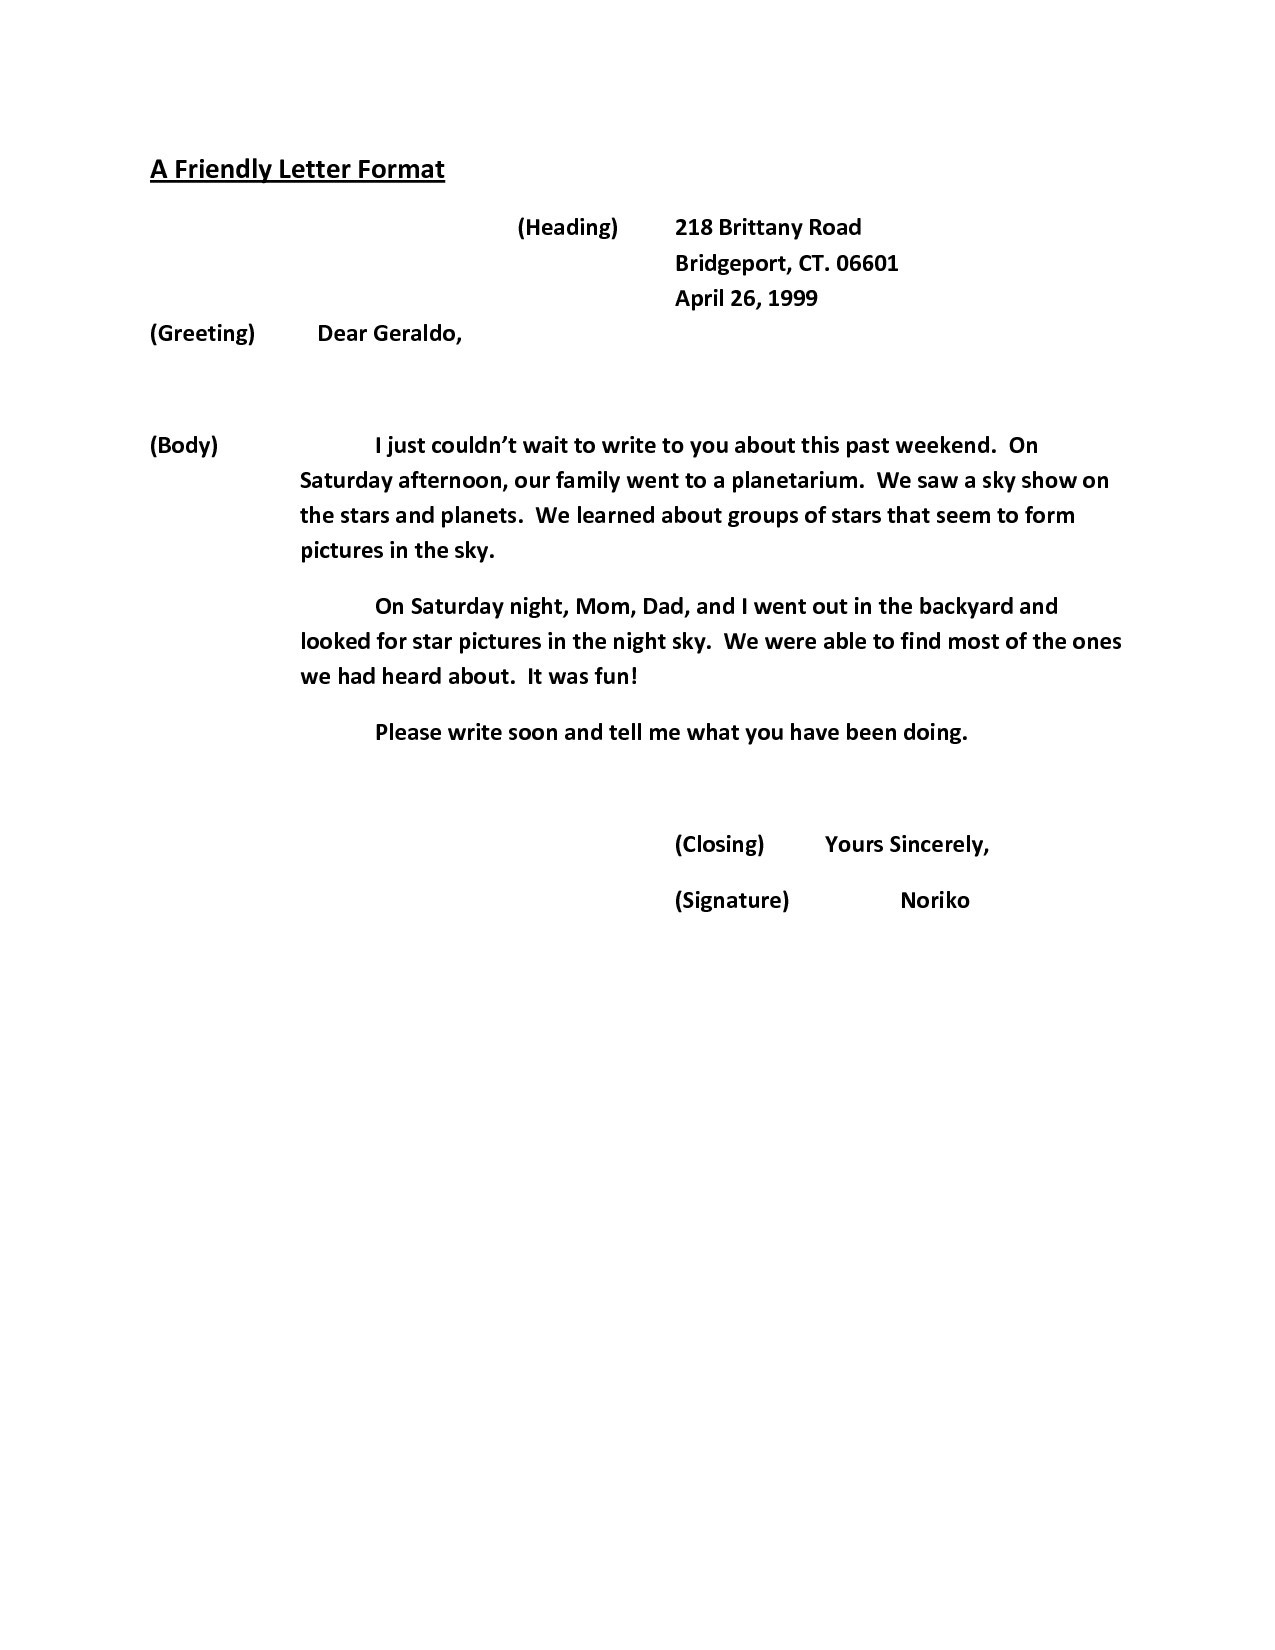 the letter black friendly letter format heading examples and forms 20891